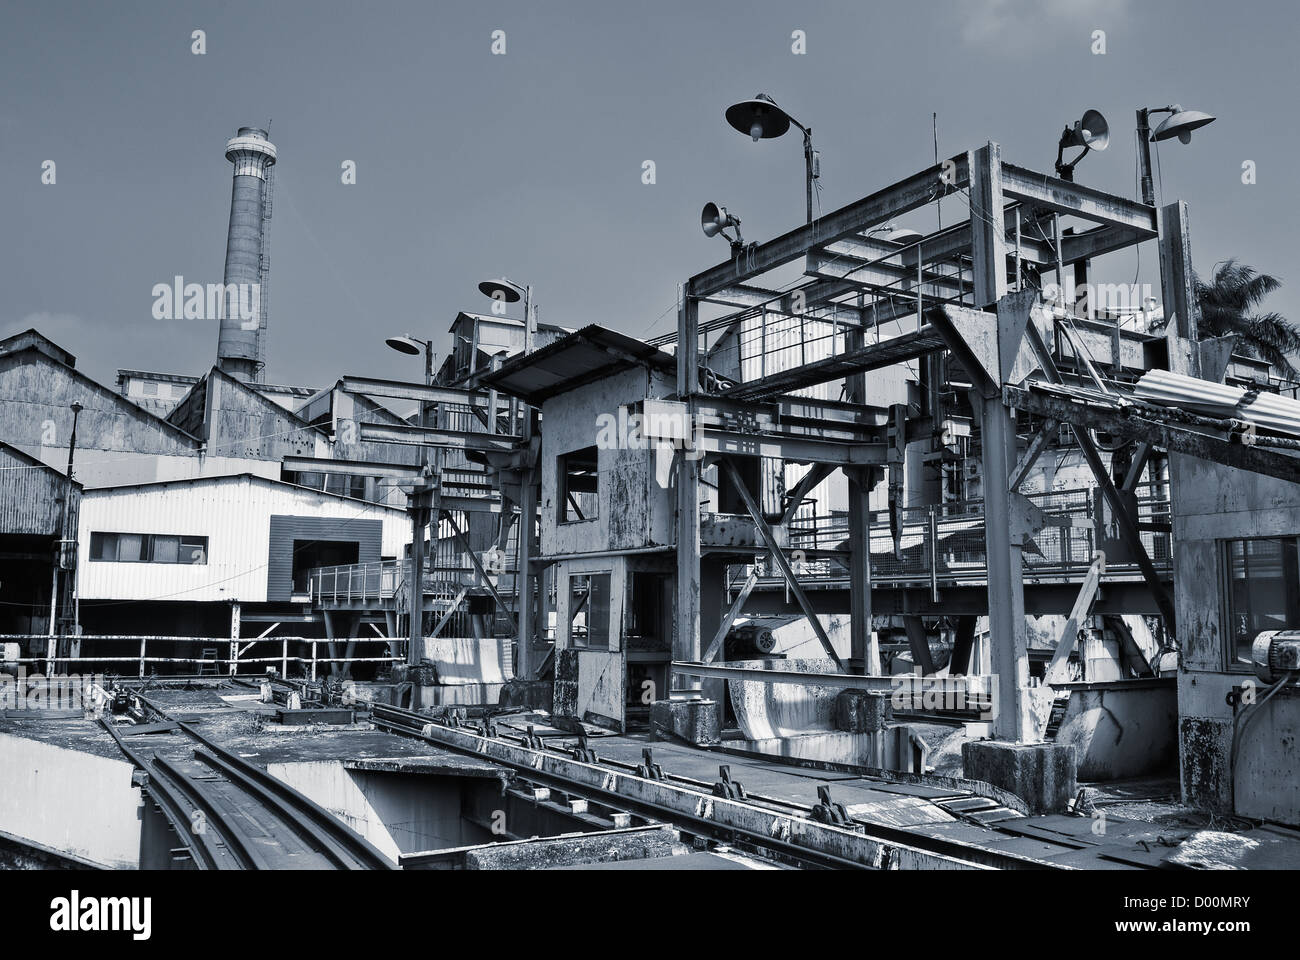 Discard industrial factory building exterior with nobody. - Stock Image